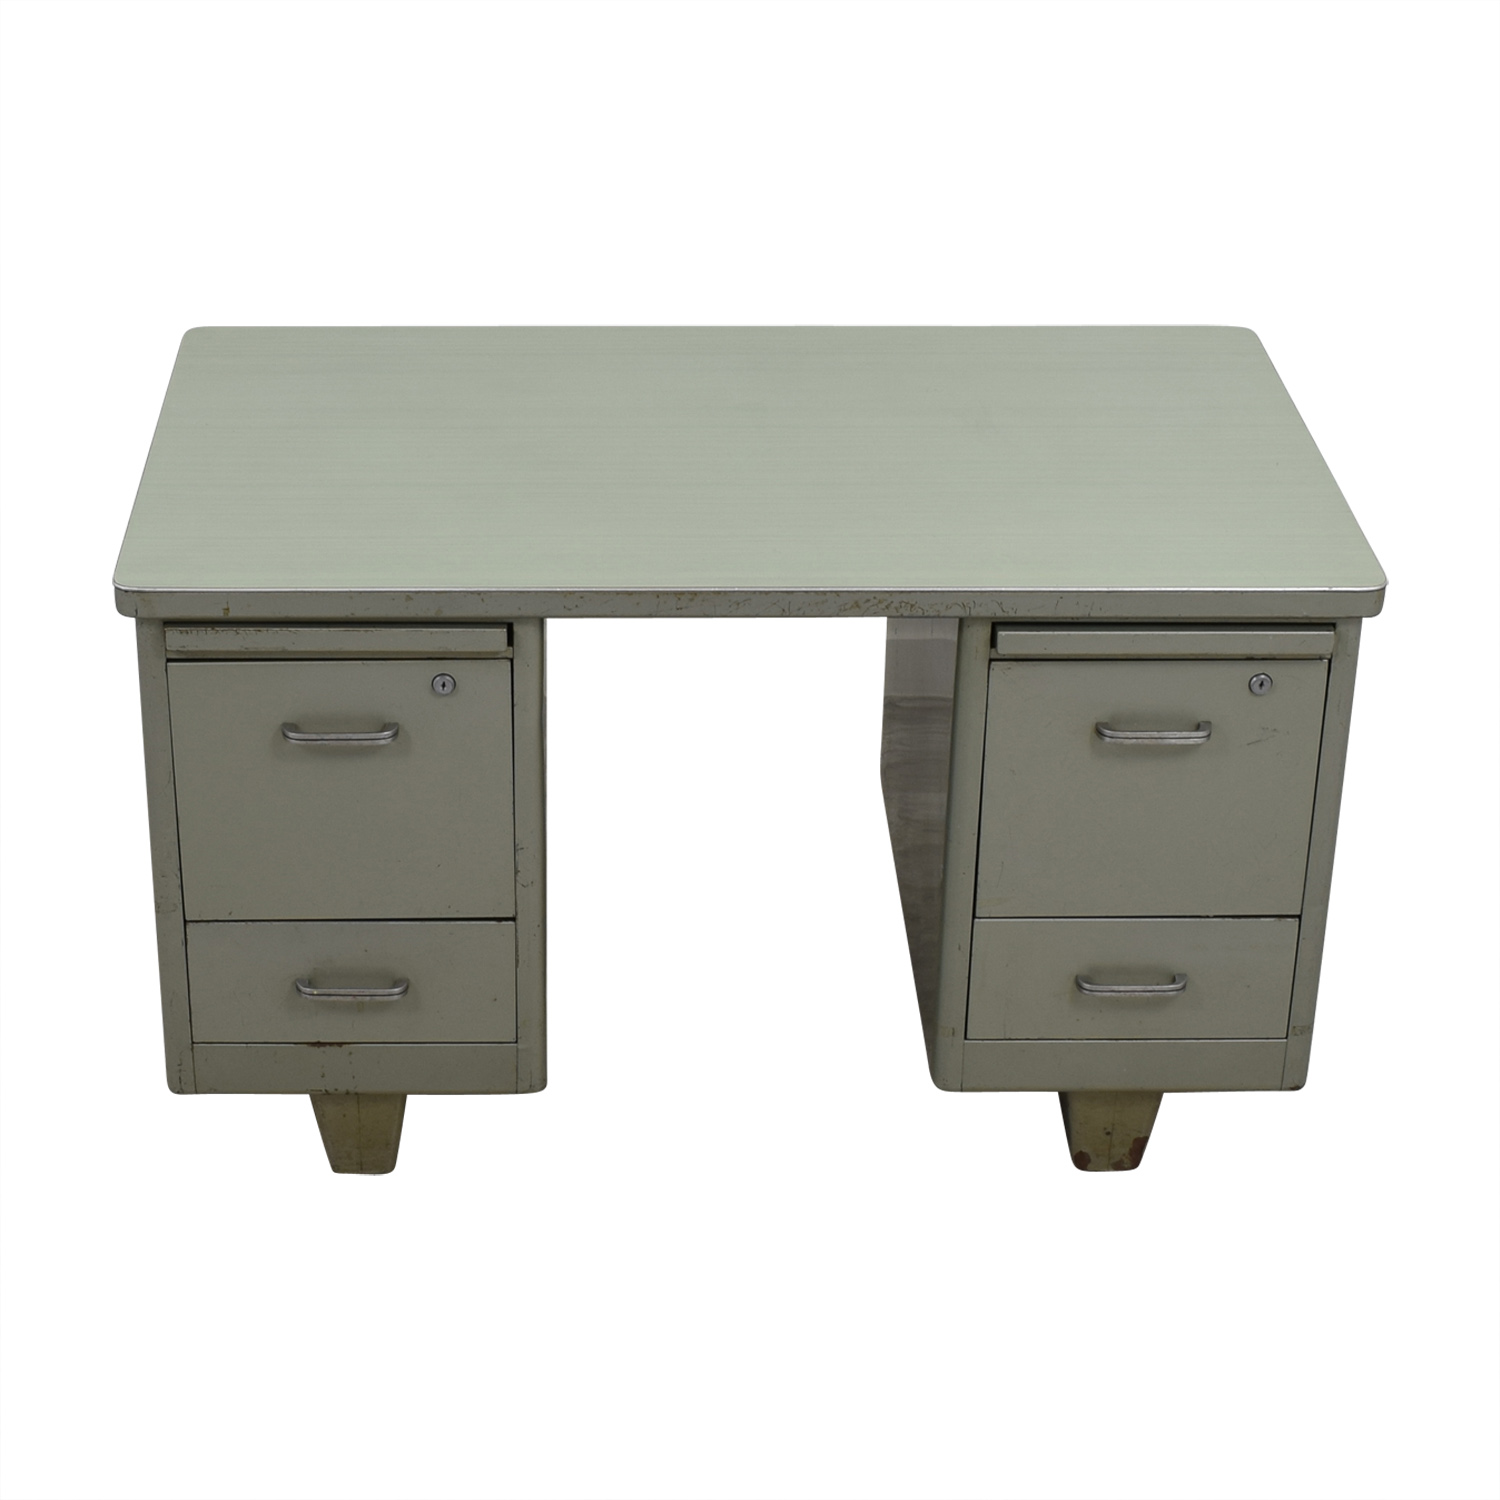 Buy Office Desk Online. Desk Where To Buy Home Office ...